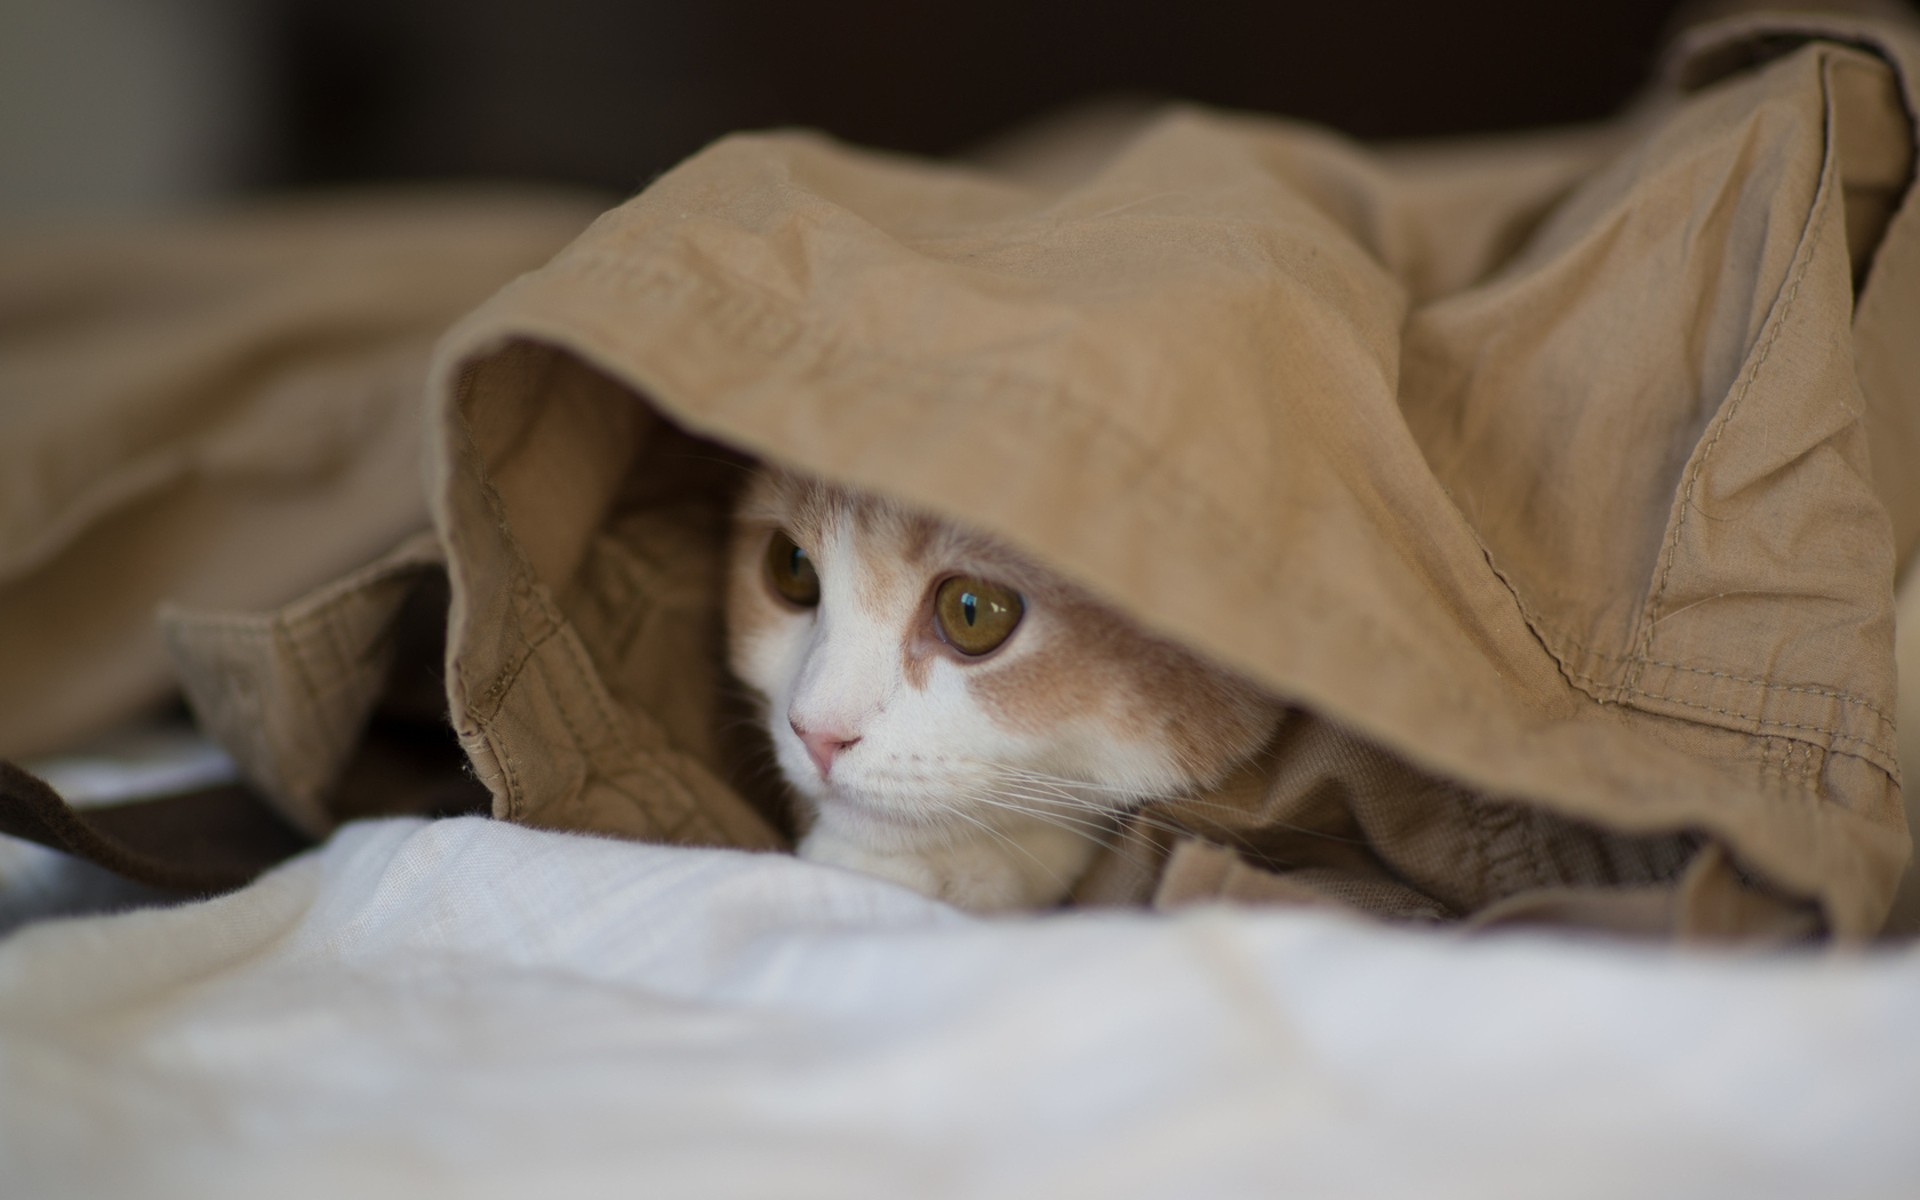 Cute Cats Wallpapers For Iphone Undercover Cat Wallpapers Undercover Cat Stock Photos